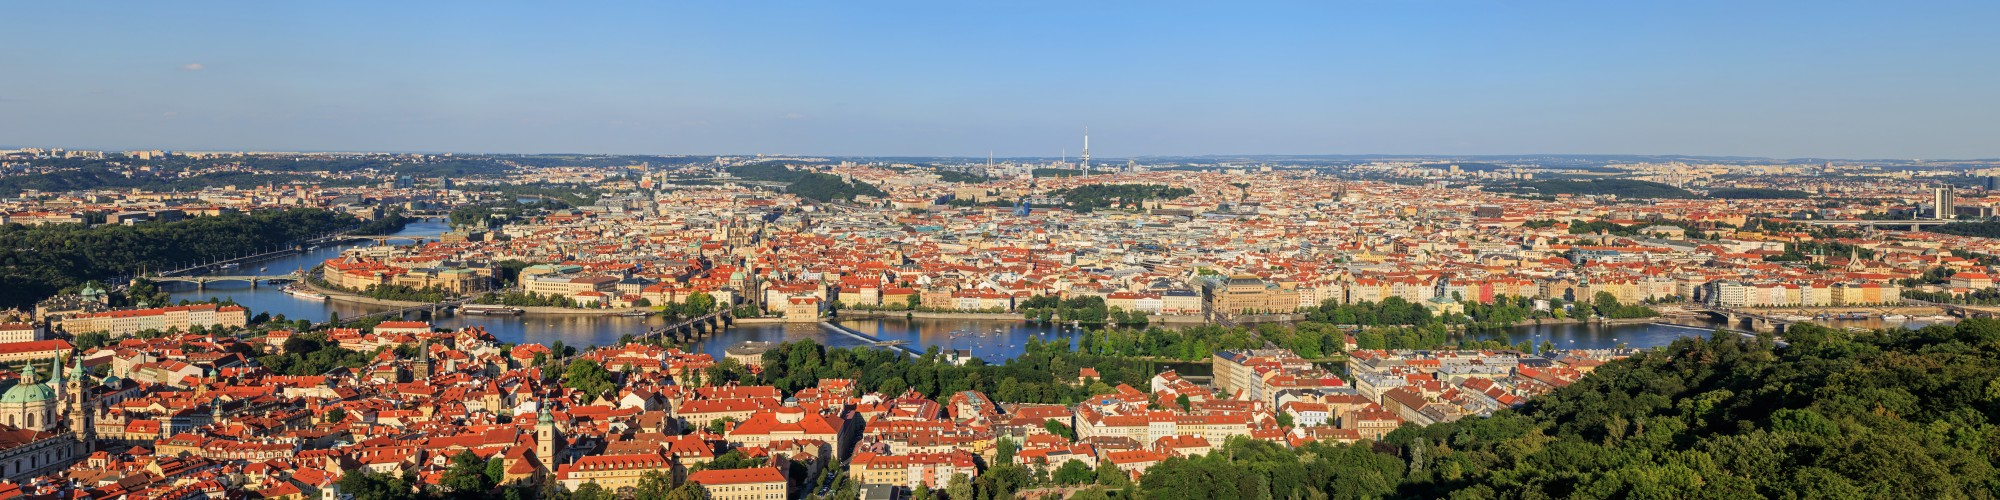 Prague 07-2016 View from Petrinska Tower PANO